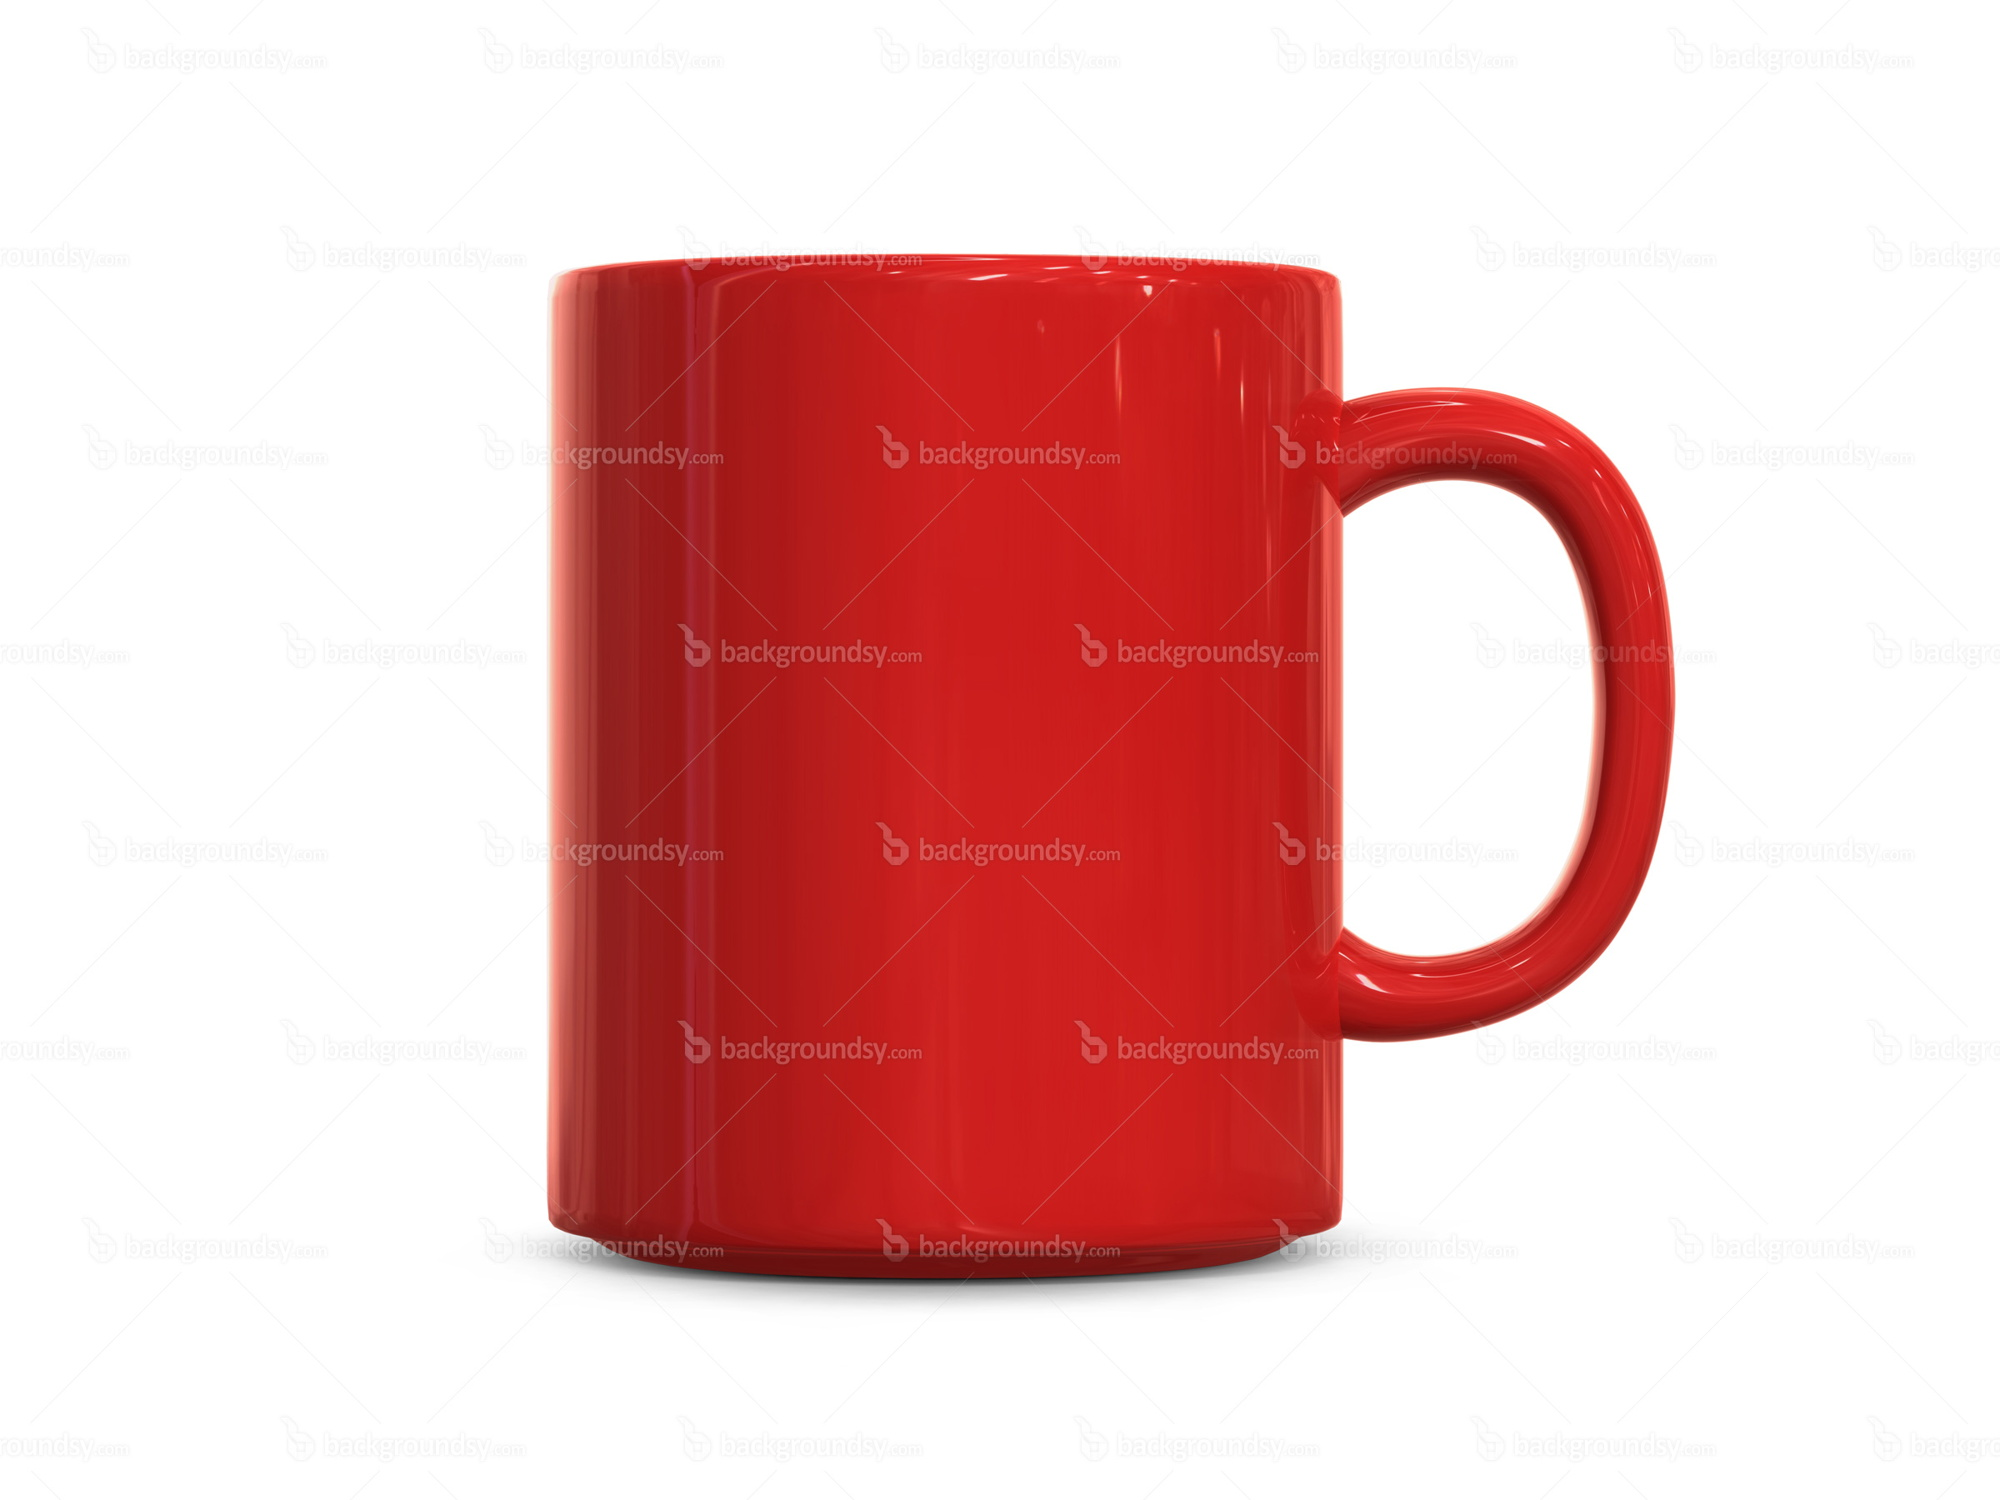 The Mug Coffee >> Red cup | Backgroundsy.com